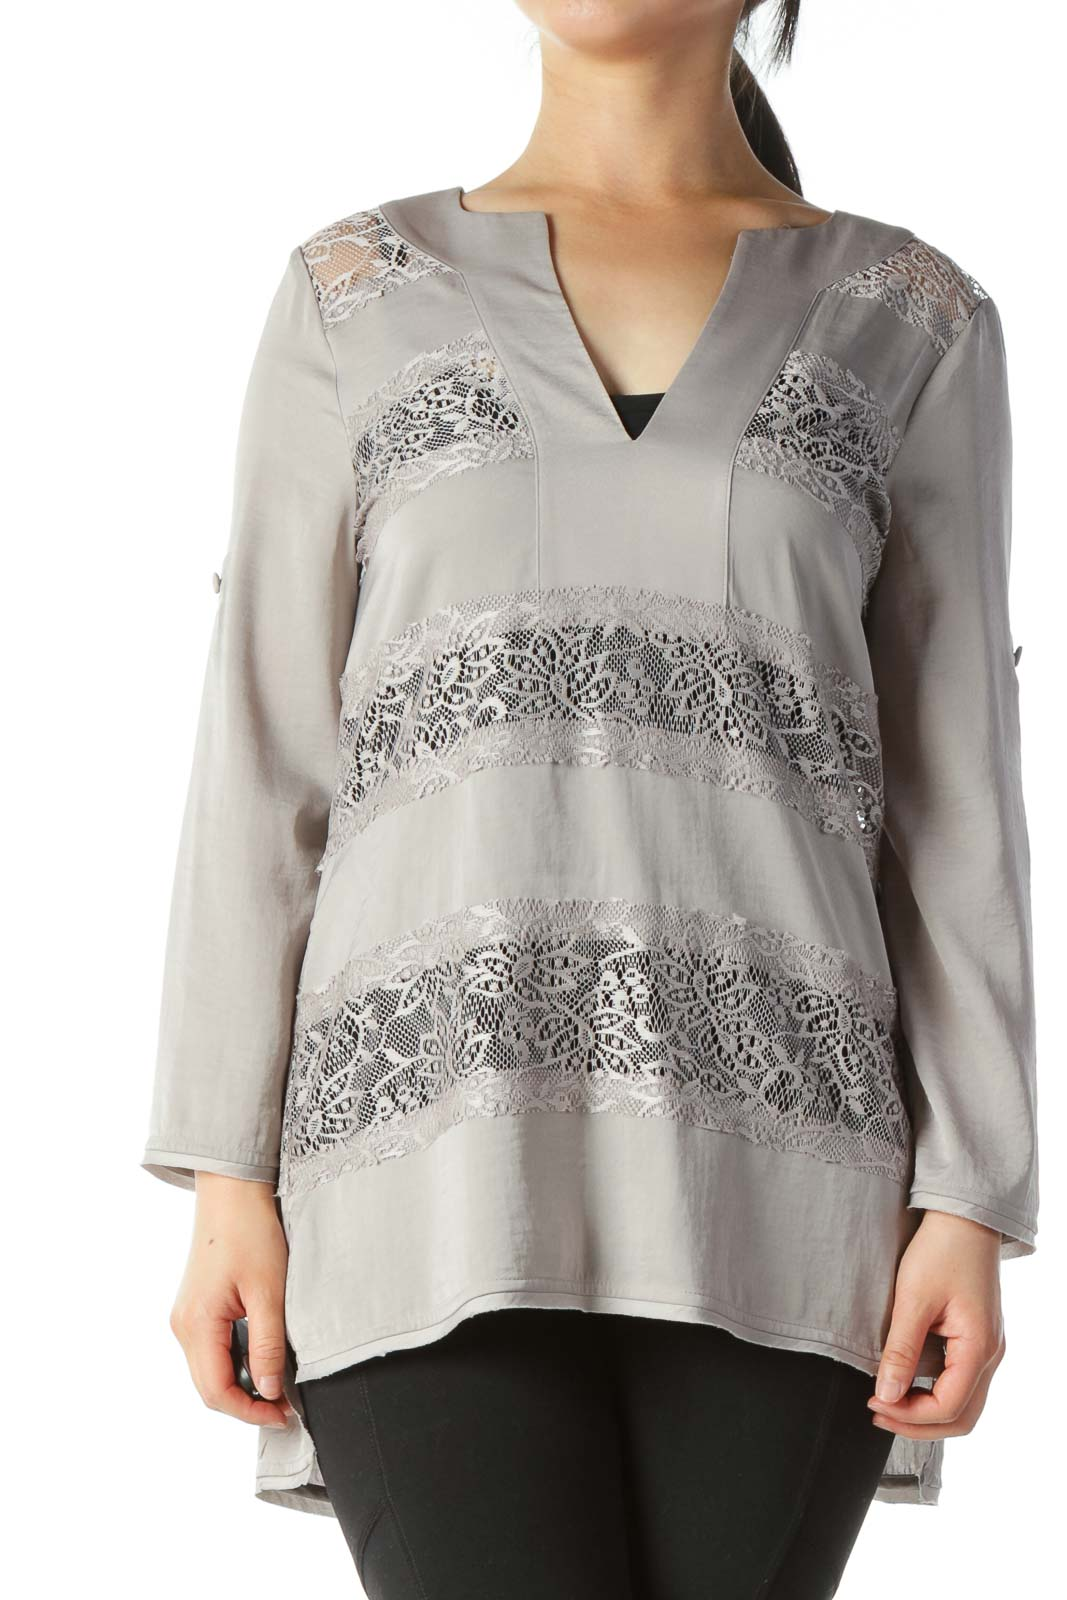 Gray V-Neck Lace See-Trough Accents Blouse